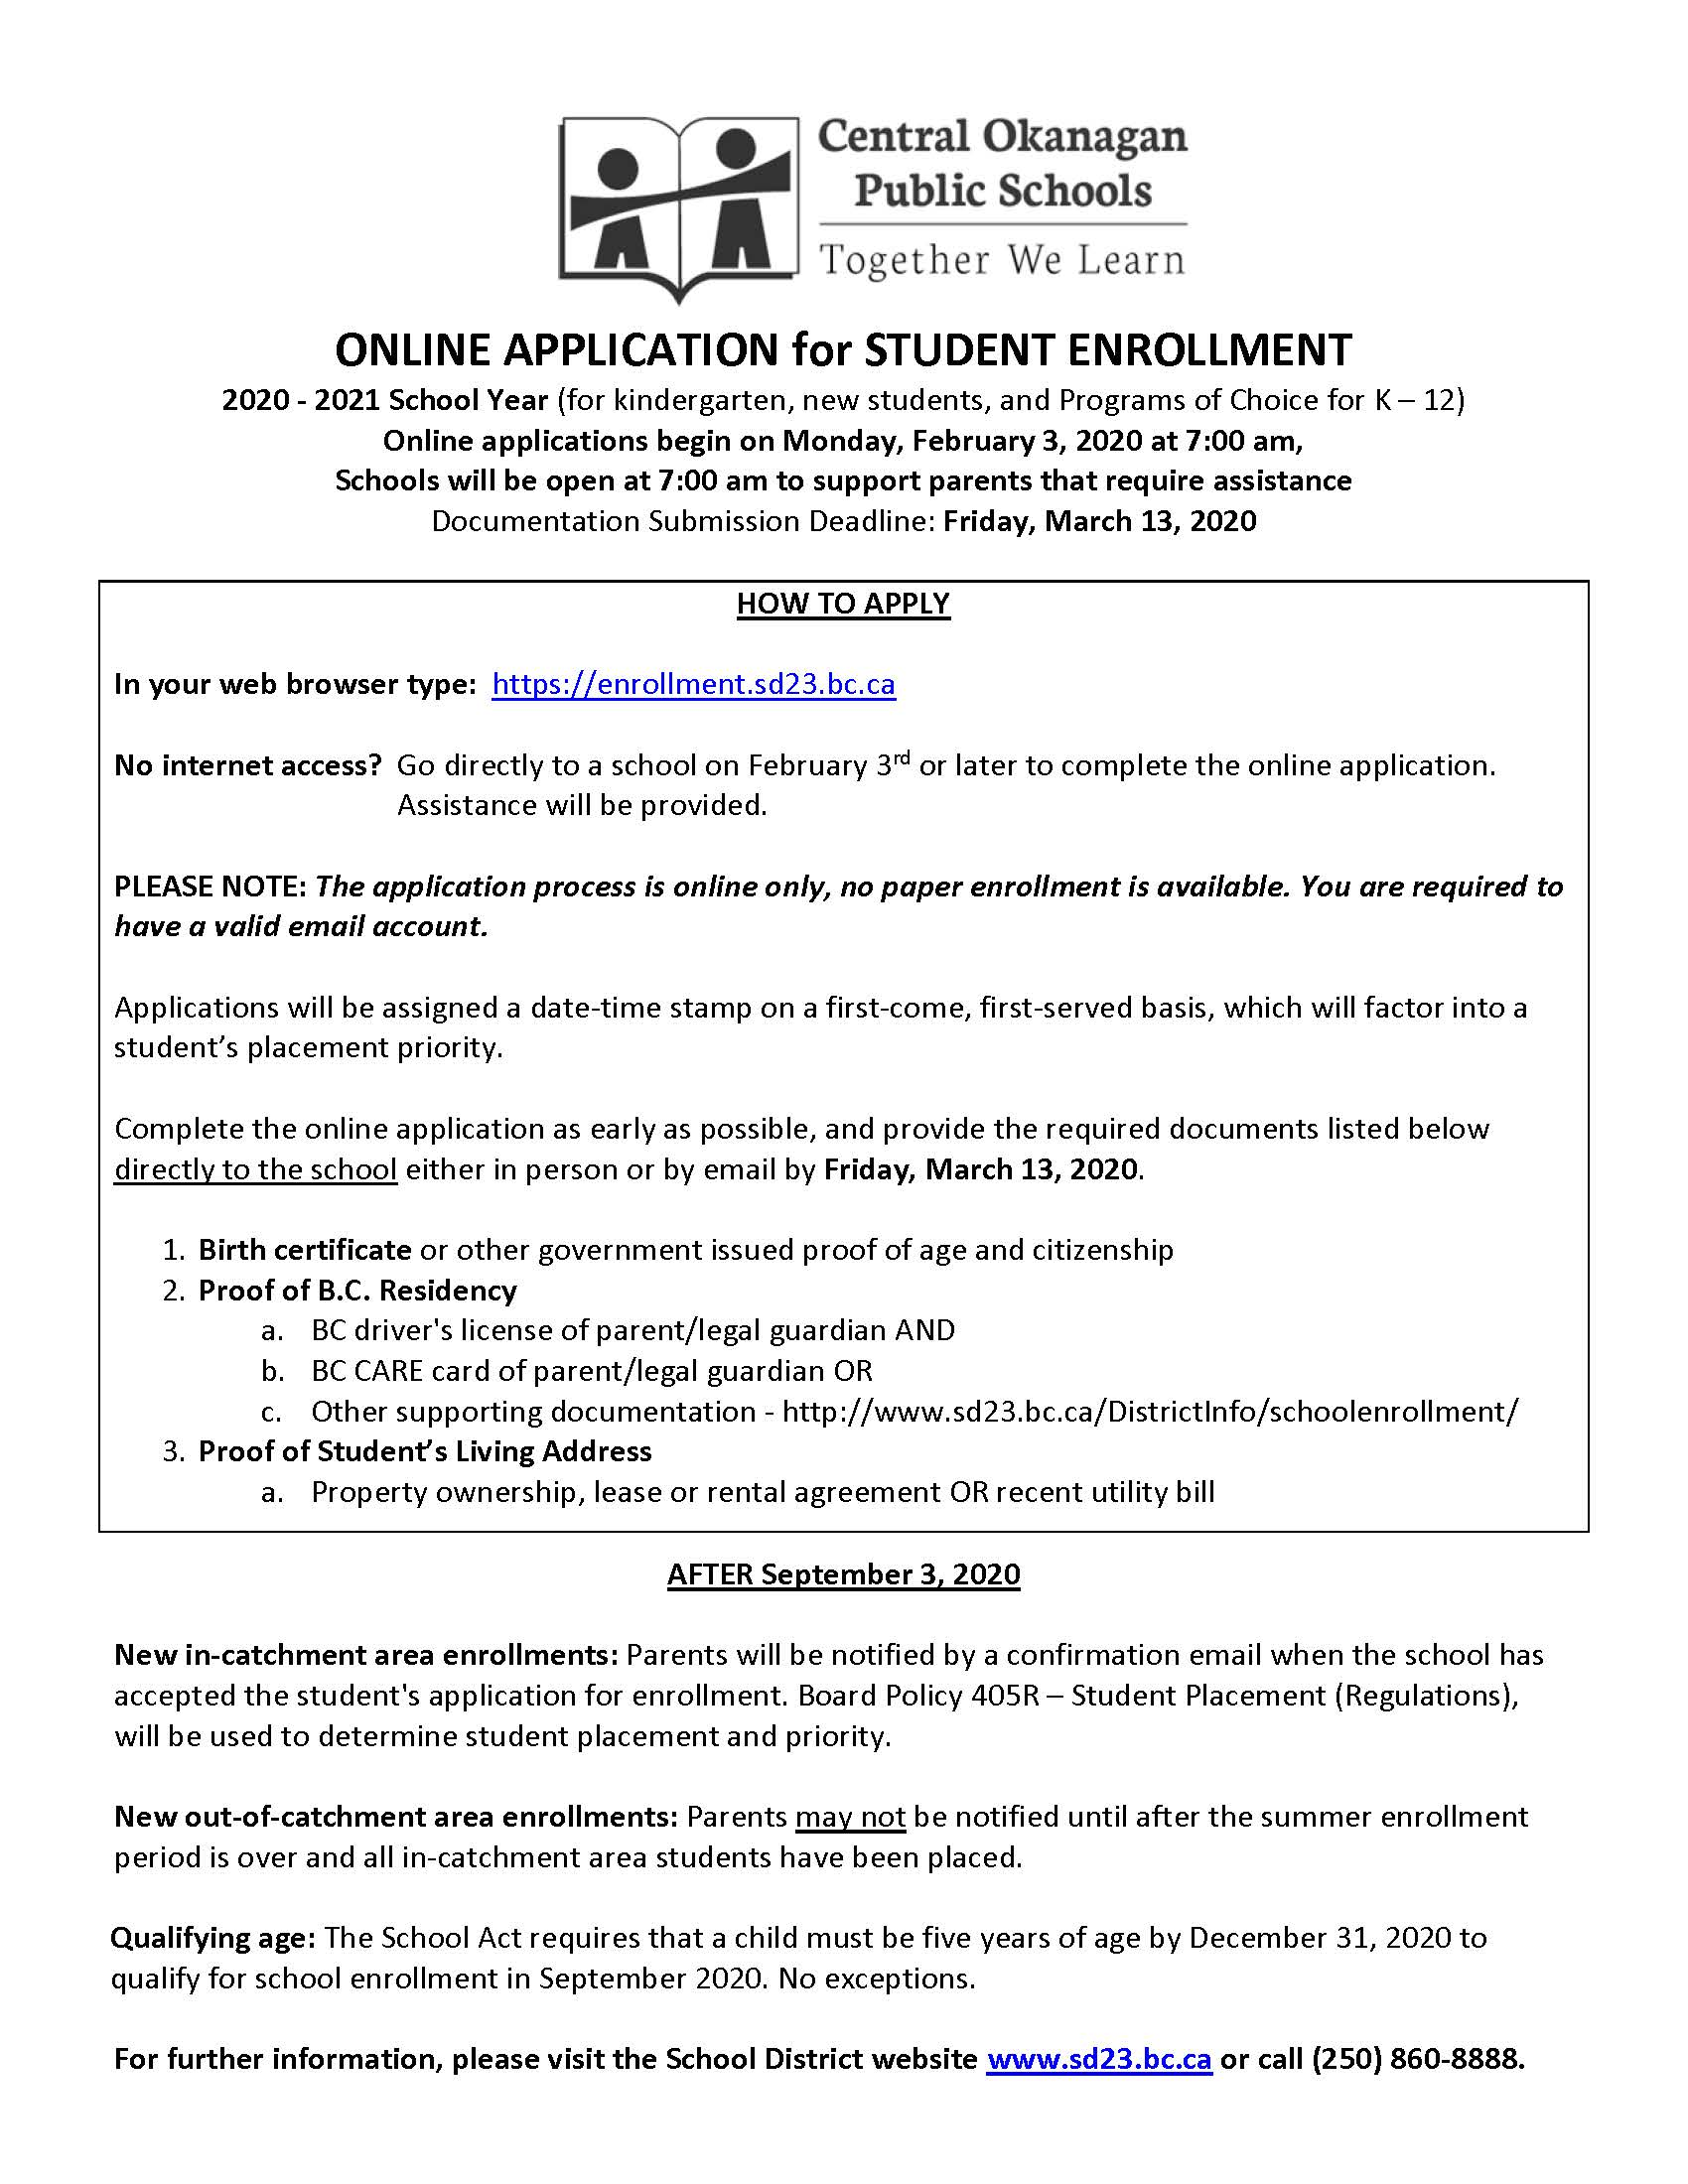 Enrollment Application Ad Spring 2020-2021.jpg